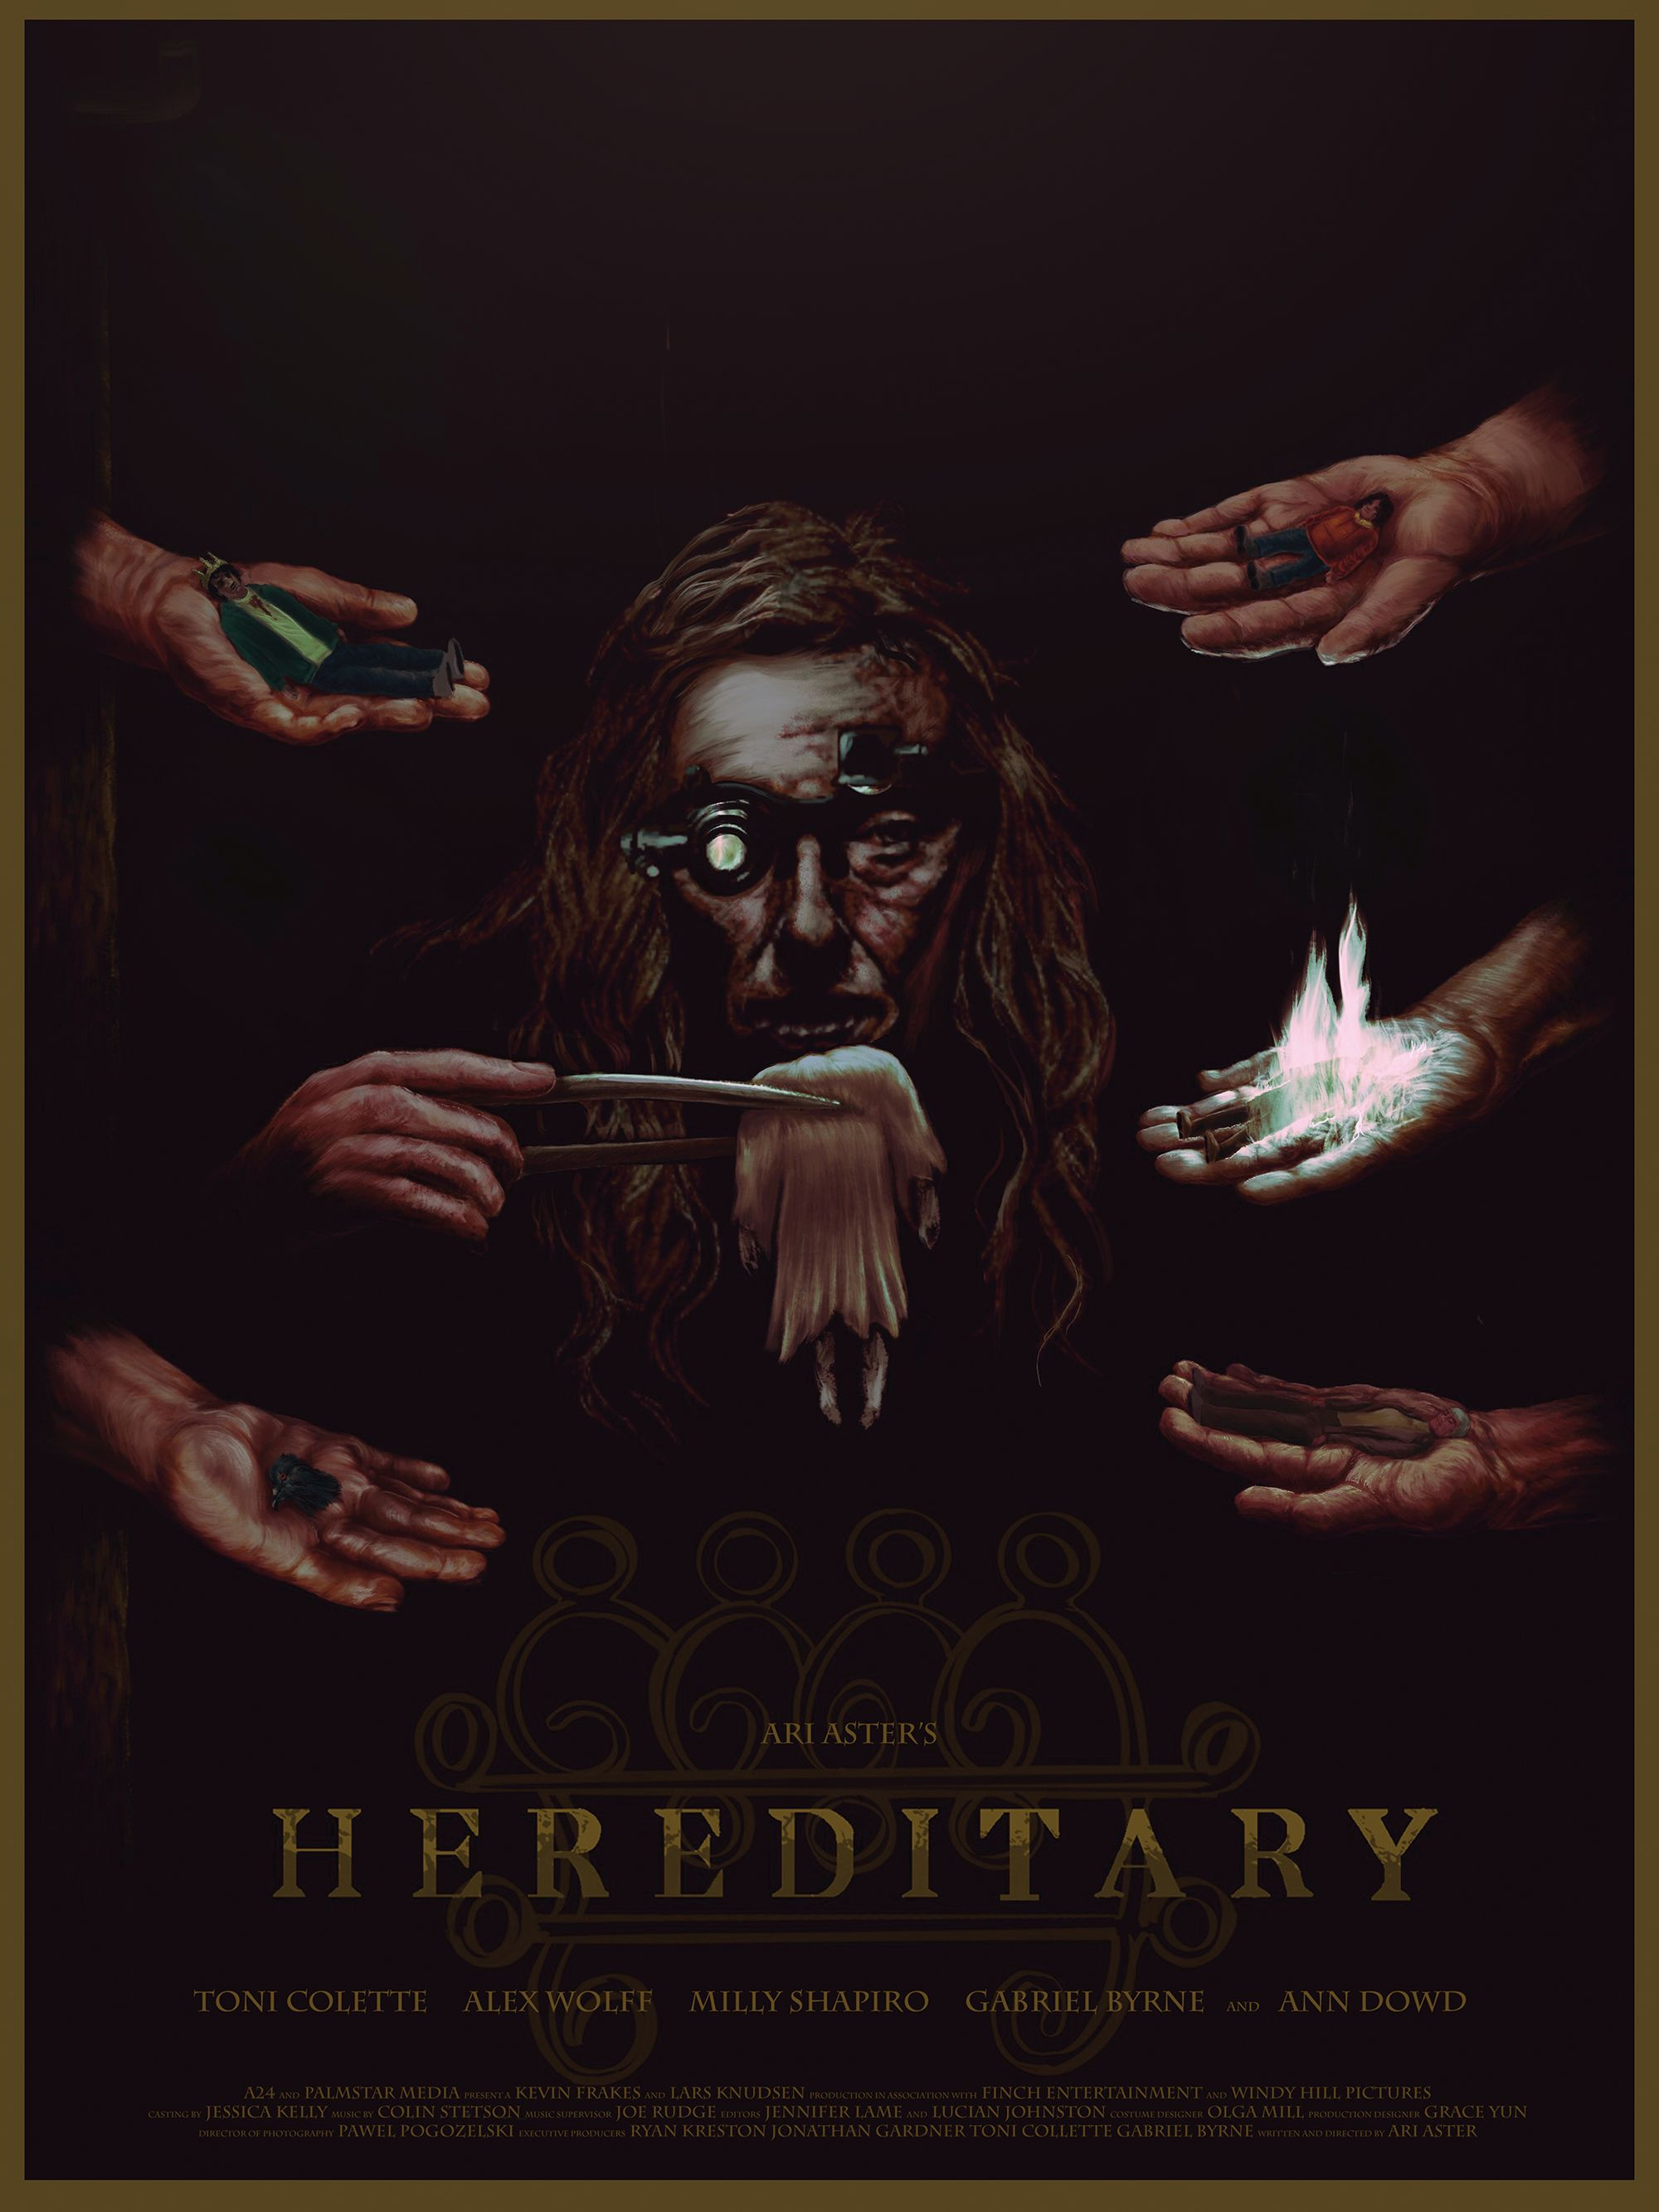 Posters From Nycc Hereditary Lotr Infinity Saga Godfather Star Warshttps Imgur Com A Rkbduup Horror Movie Art Film Posters Art Movie Poster Art